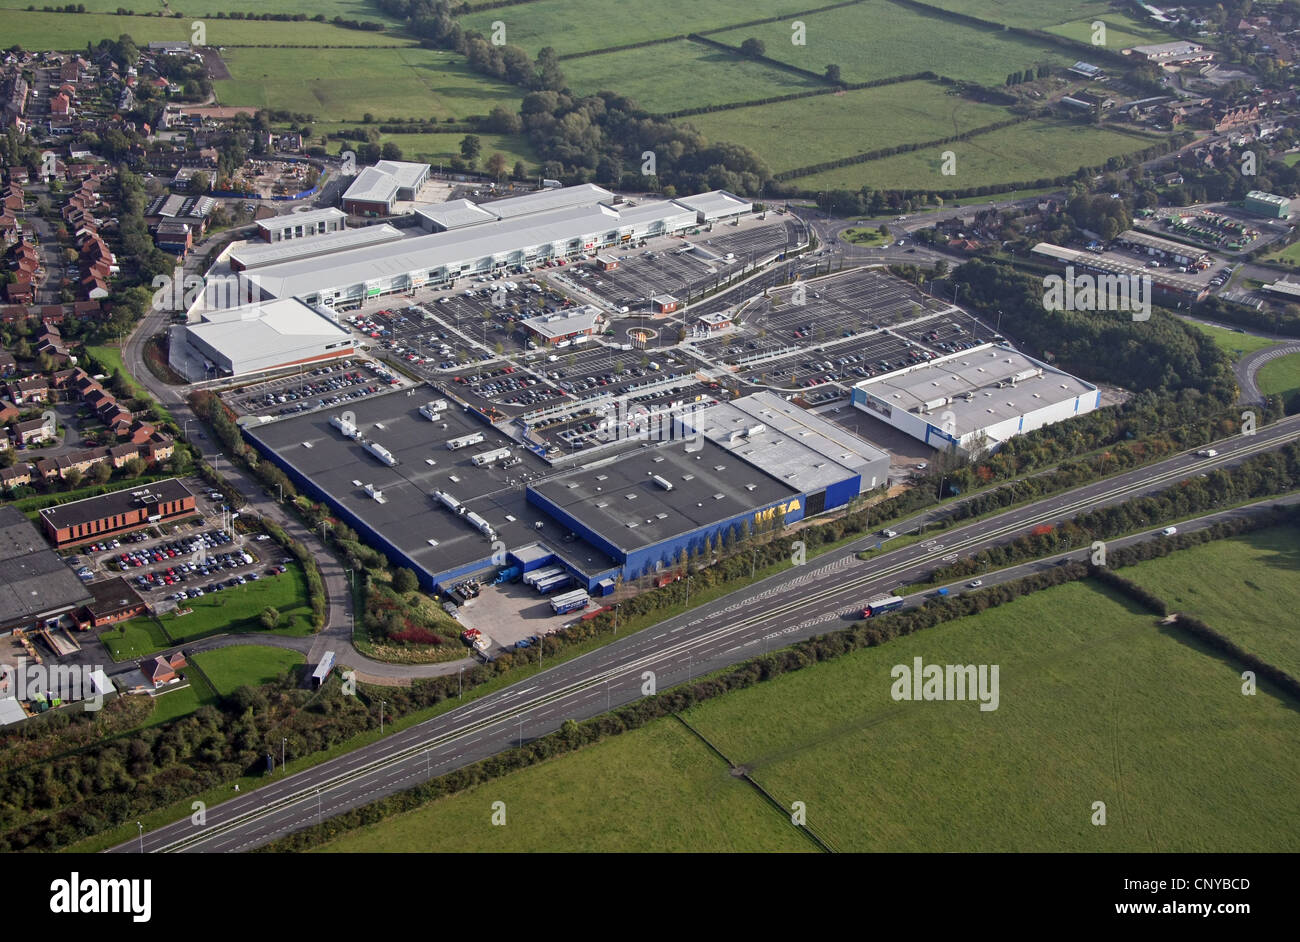 Aerial view of Giltbrook retail park - Stock Image